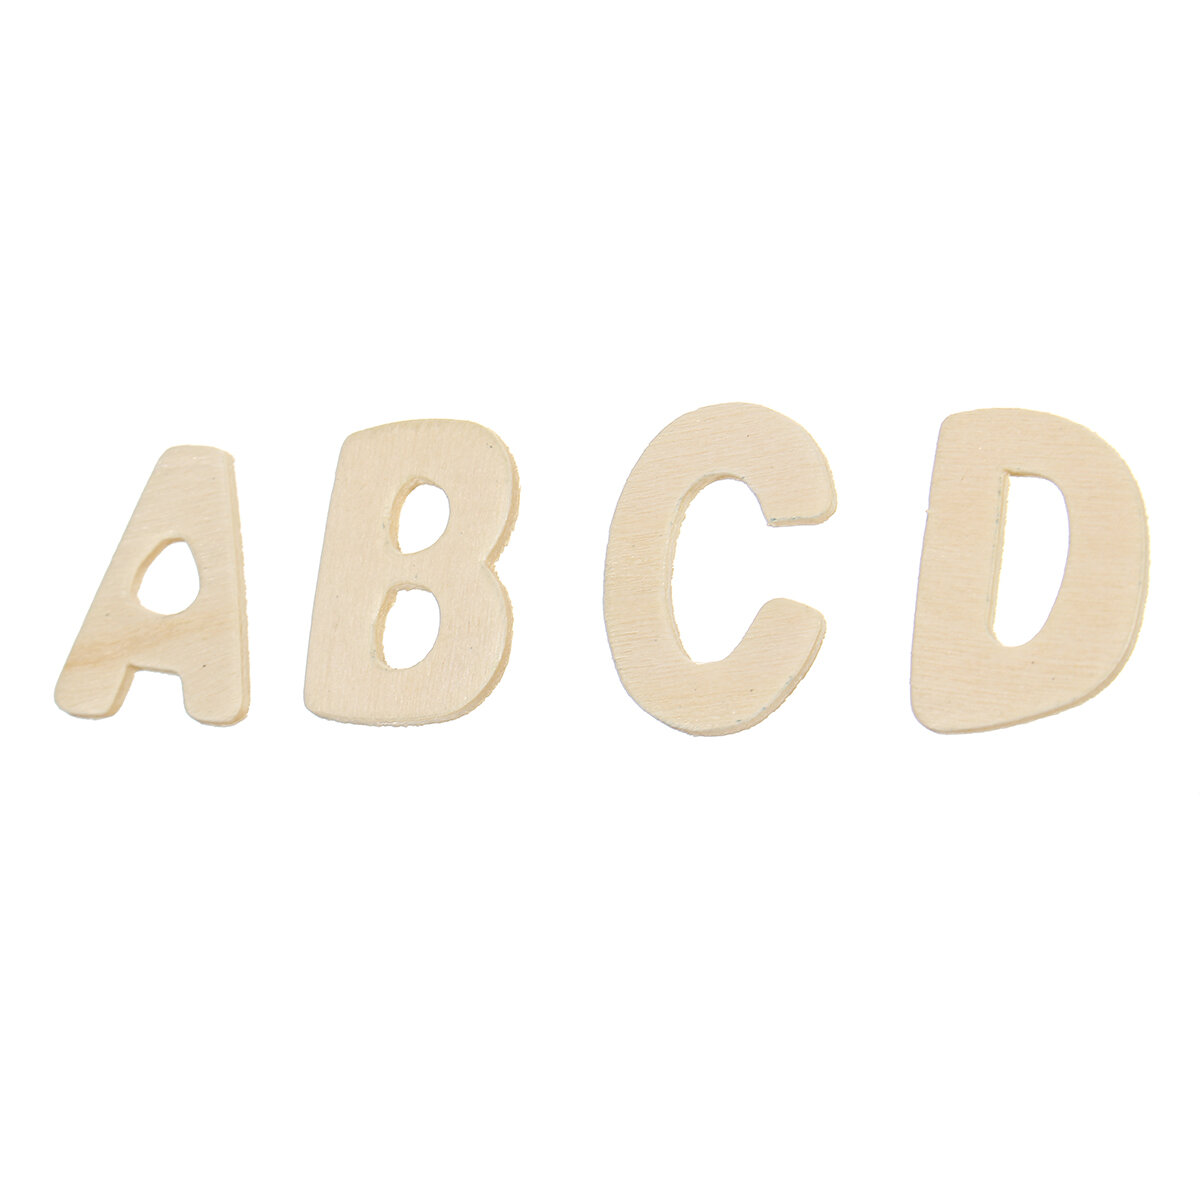 156X Wooden Scrabble Tiles Letters Puzzle Blocks Crafts Wood Alphabet Kids Early Education Toys Gift - 7